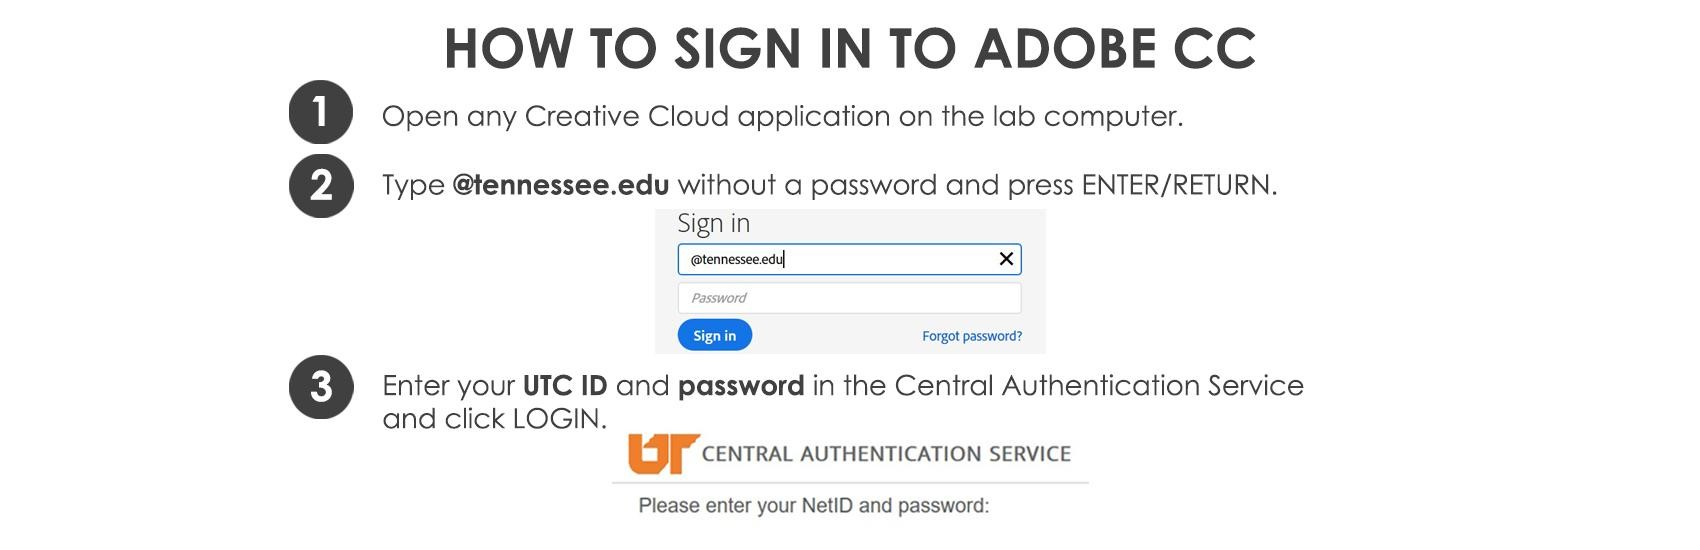 How to sign in to Adobe CC. 1. Open any Creative Cloud application on the lab computer. 2. Type @tennessee.edu without a password and press Enter/Return. 3. Enter your UTC ID and password in the Central Authentication Service and click LOGIN.